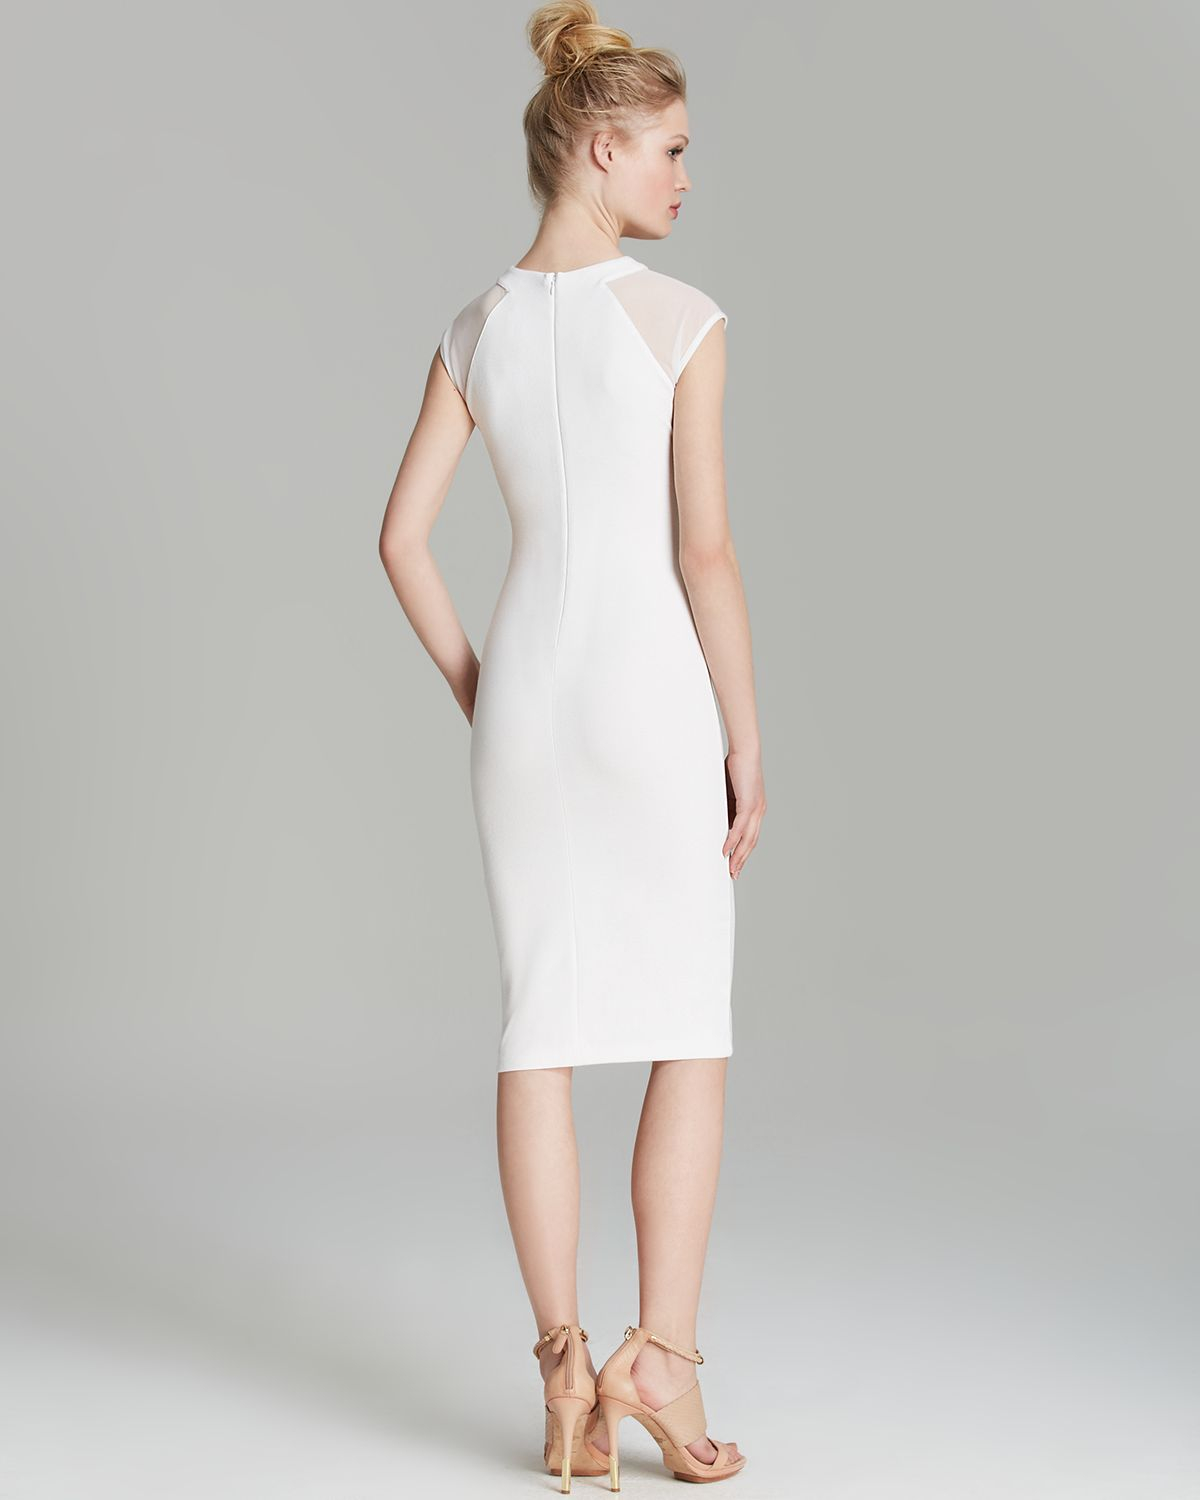 Lyst french connection dress vivien paneled jersey in for French connection shirt dress